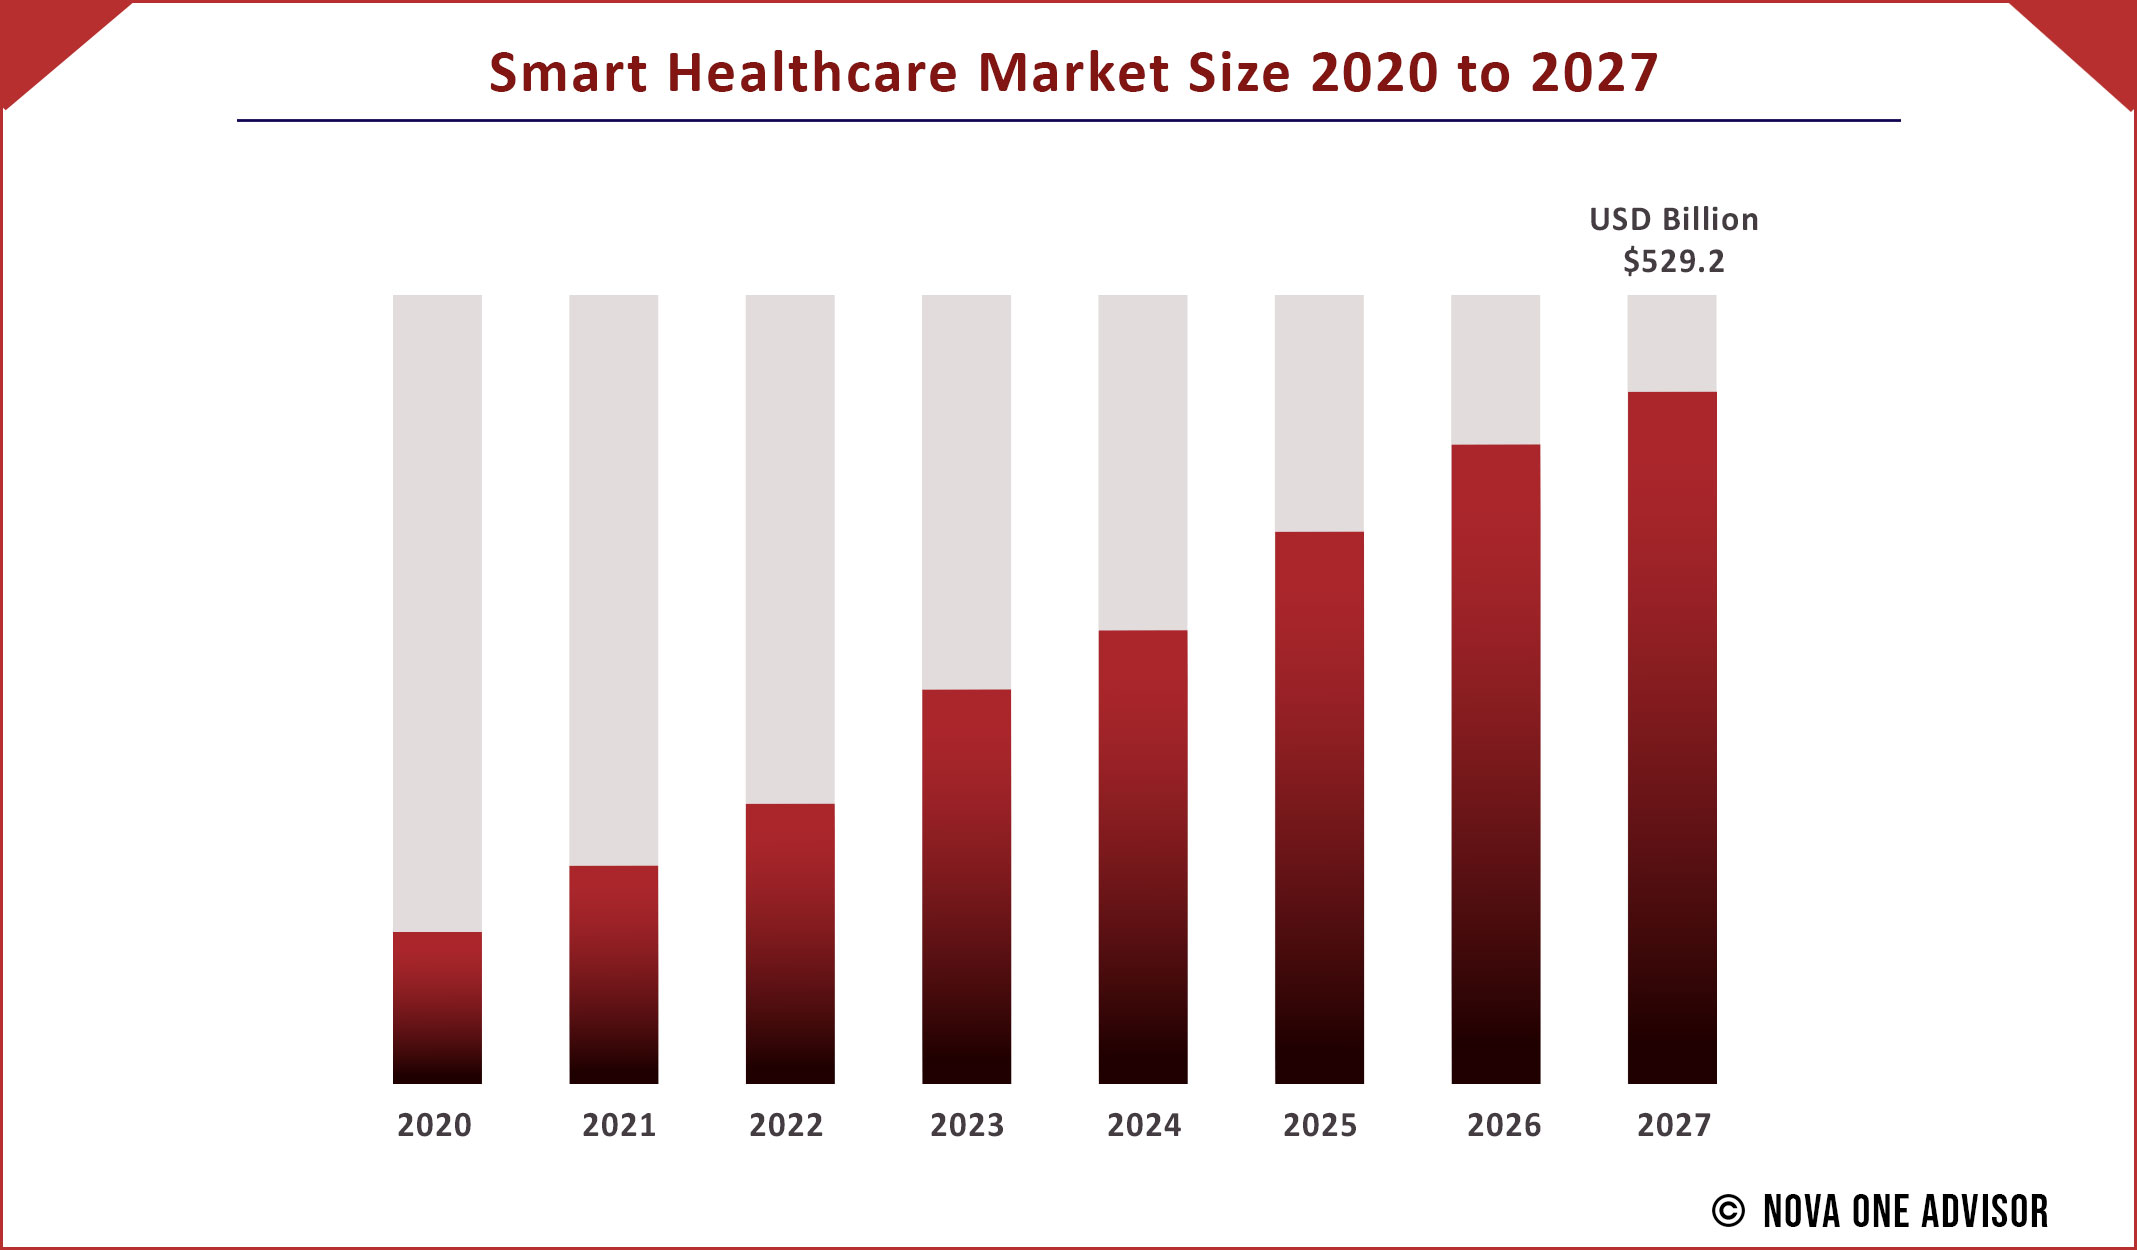 Smart Healthcare Market Size 2020 to 2027